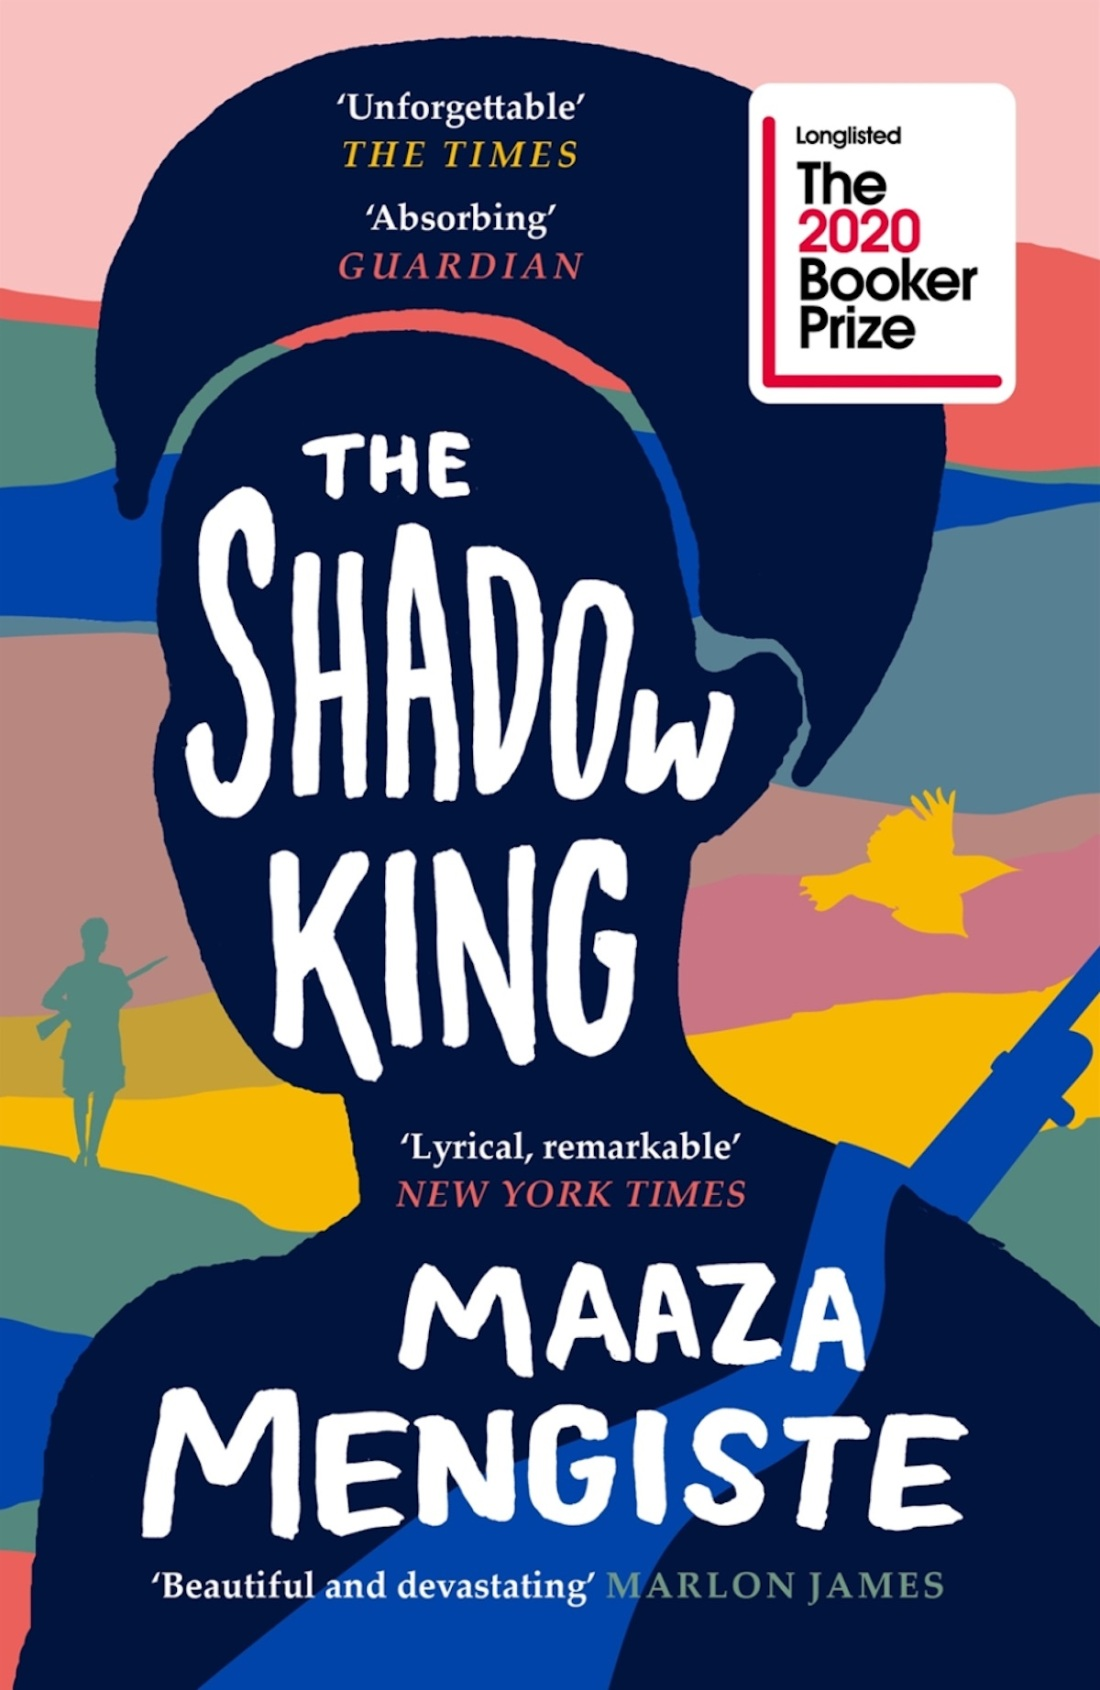 the shadow king book cover by Maaza Mengiste